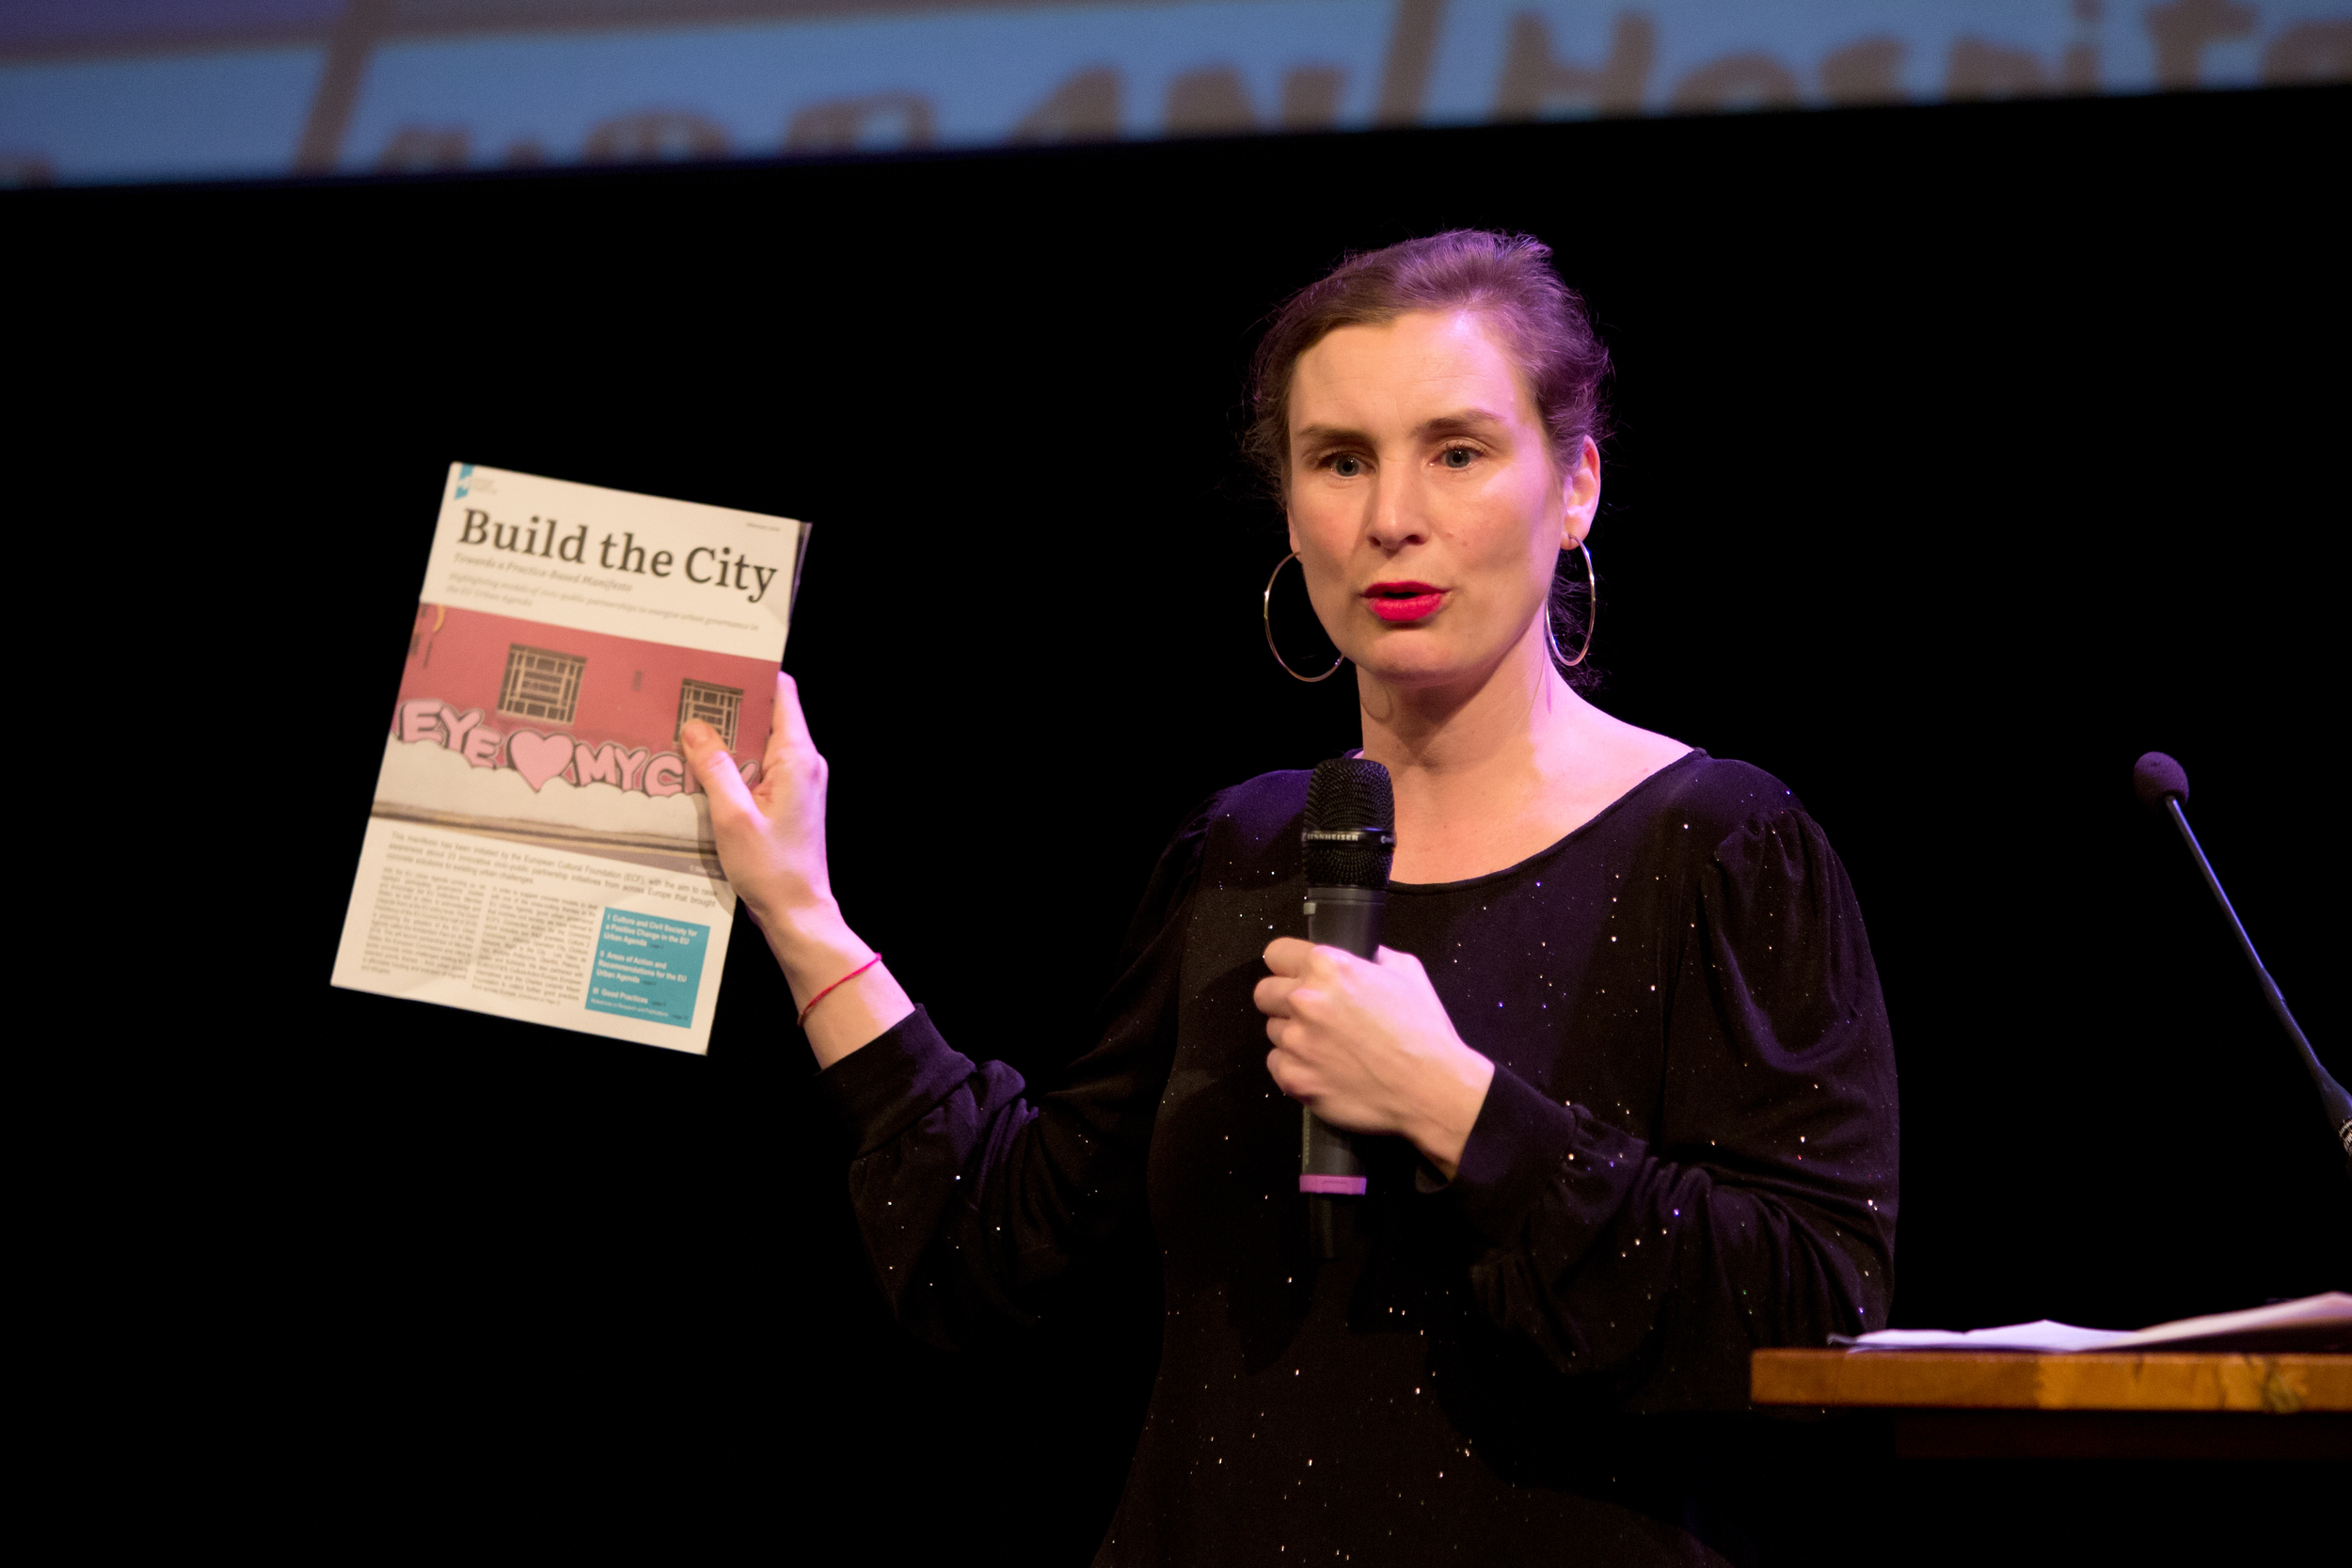 Natasja van den Berg holds the Build the City Manifesto during our Co-creating the City event.Photo by Maarten van Haaff.